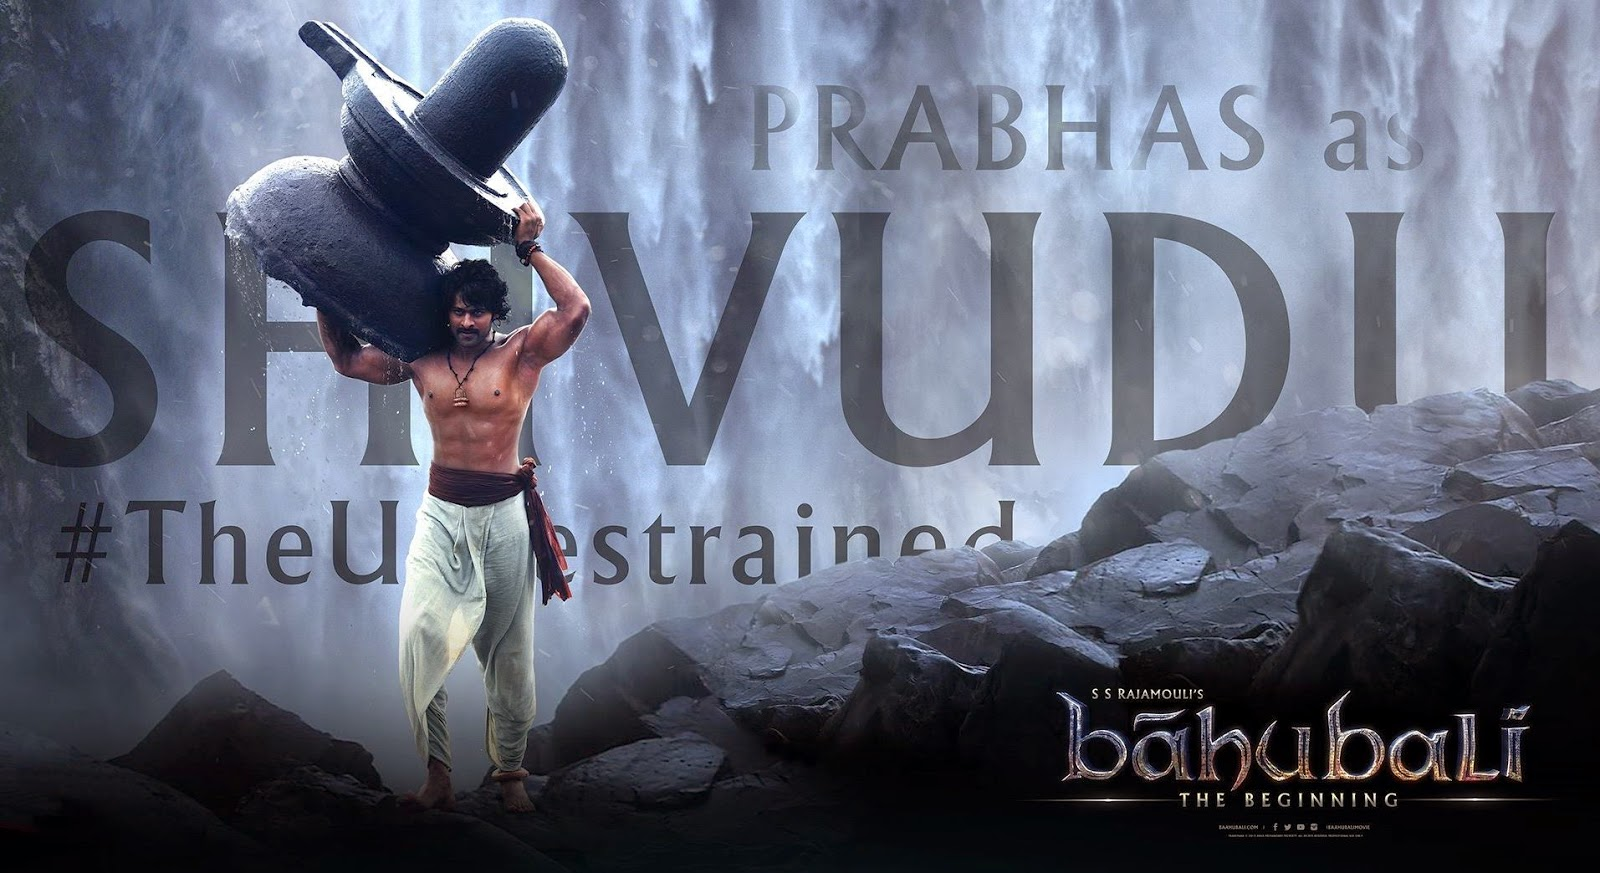 Baahubali Movie 7th Day Box Office Business Collection Report 16th of July